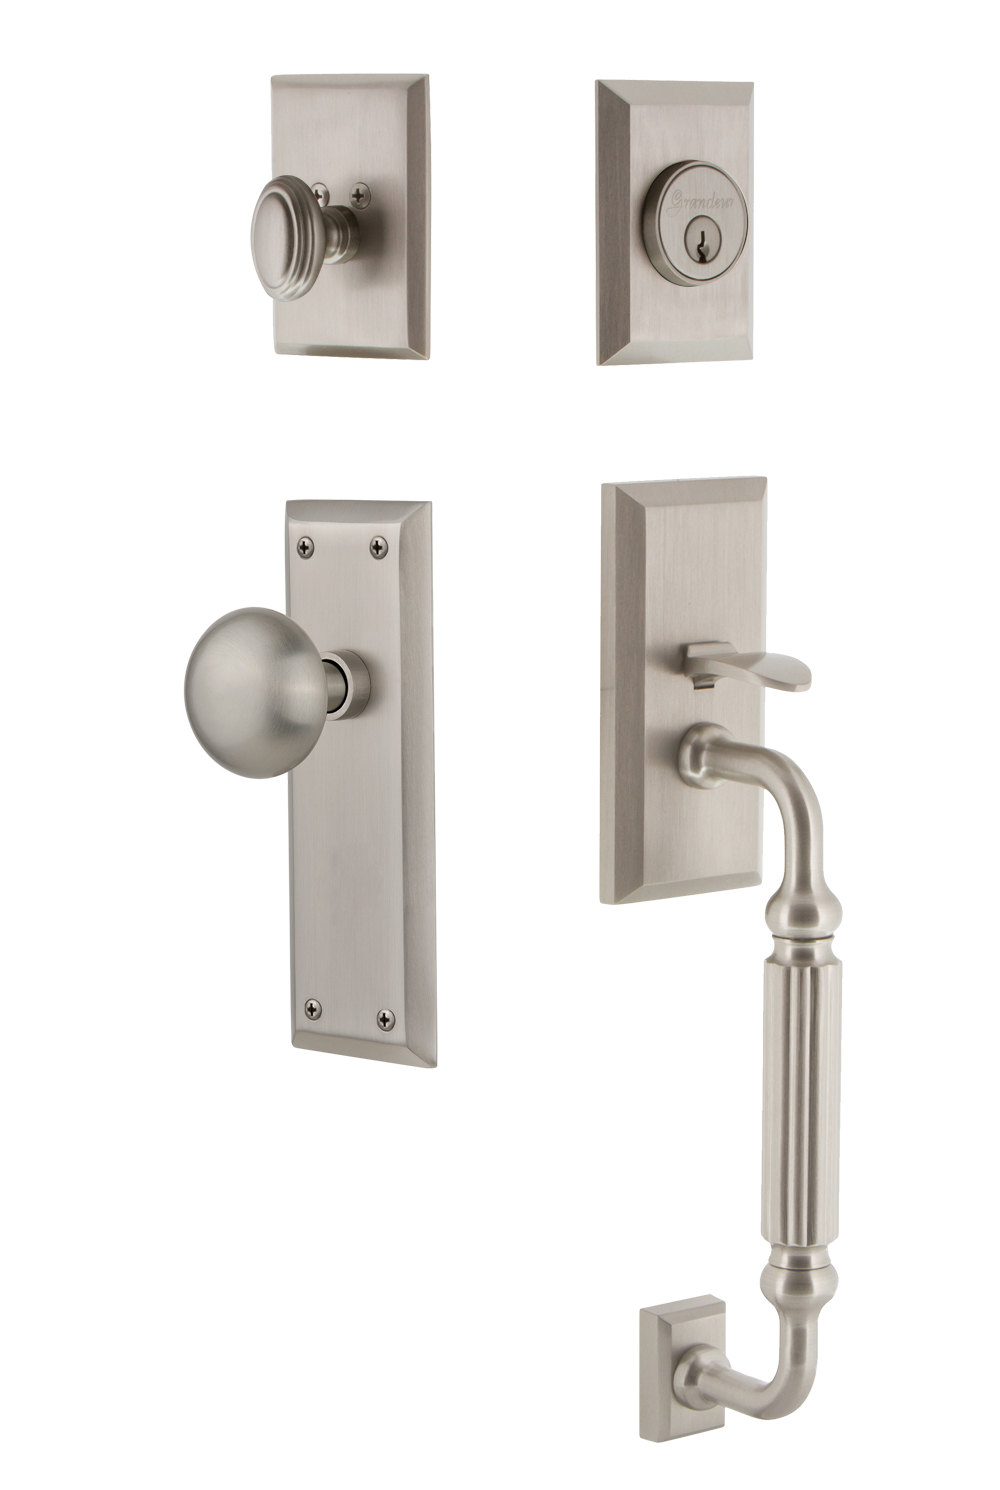 Grandeur Fifth Avenue Handleset With F Grip And Fifth Avenue Interior Plates Multiple Knob And Lever Choices Direct Door Hardware